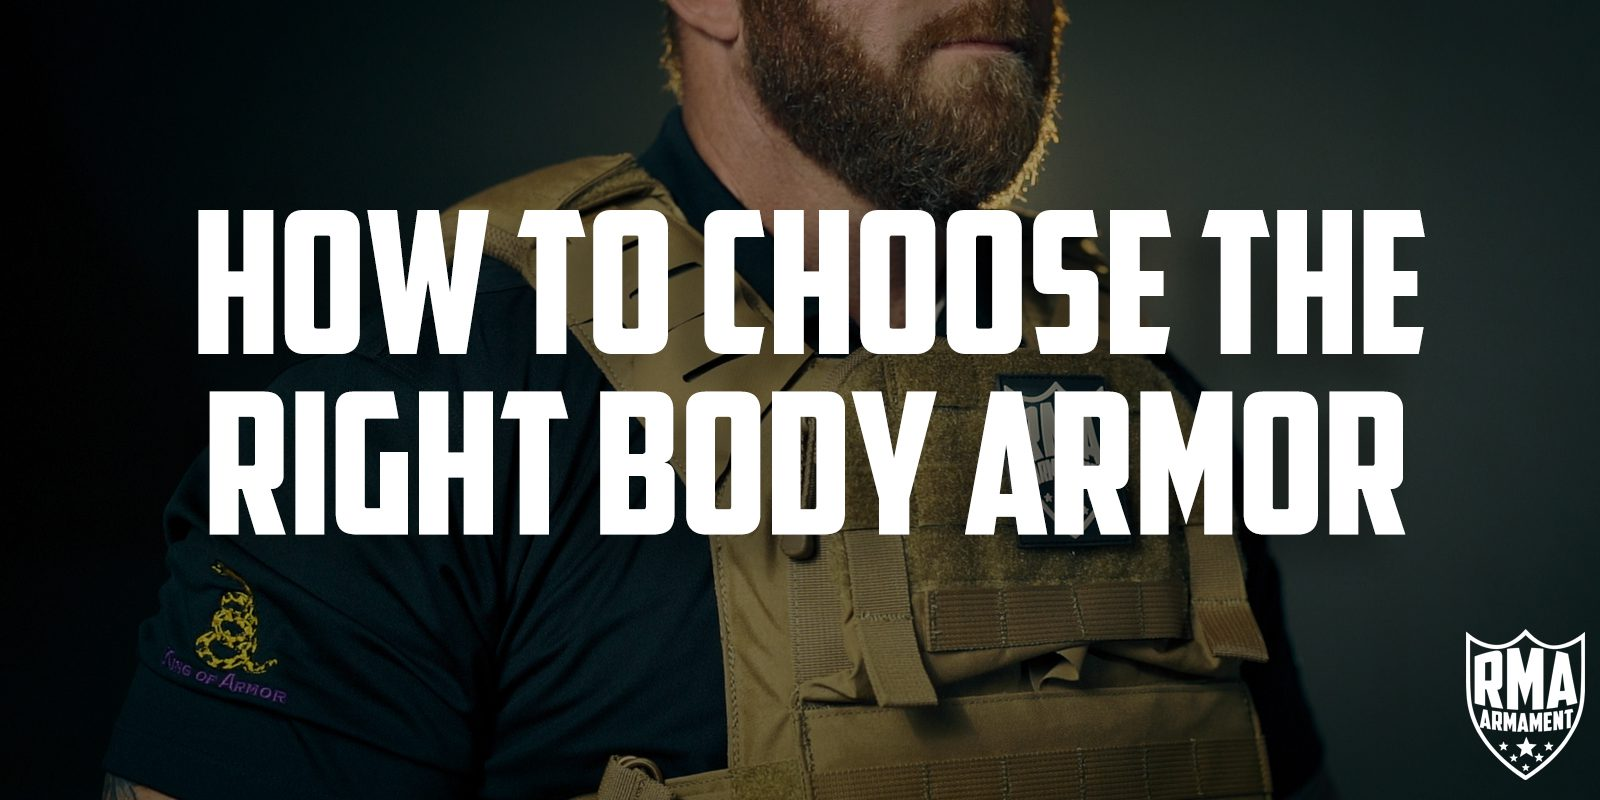 How-to-choose-the-right-body-armor